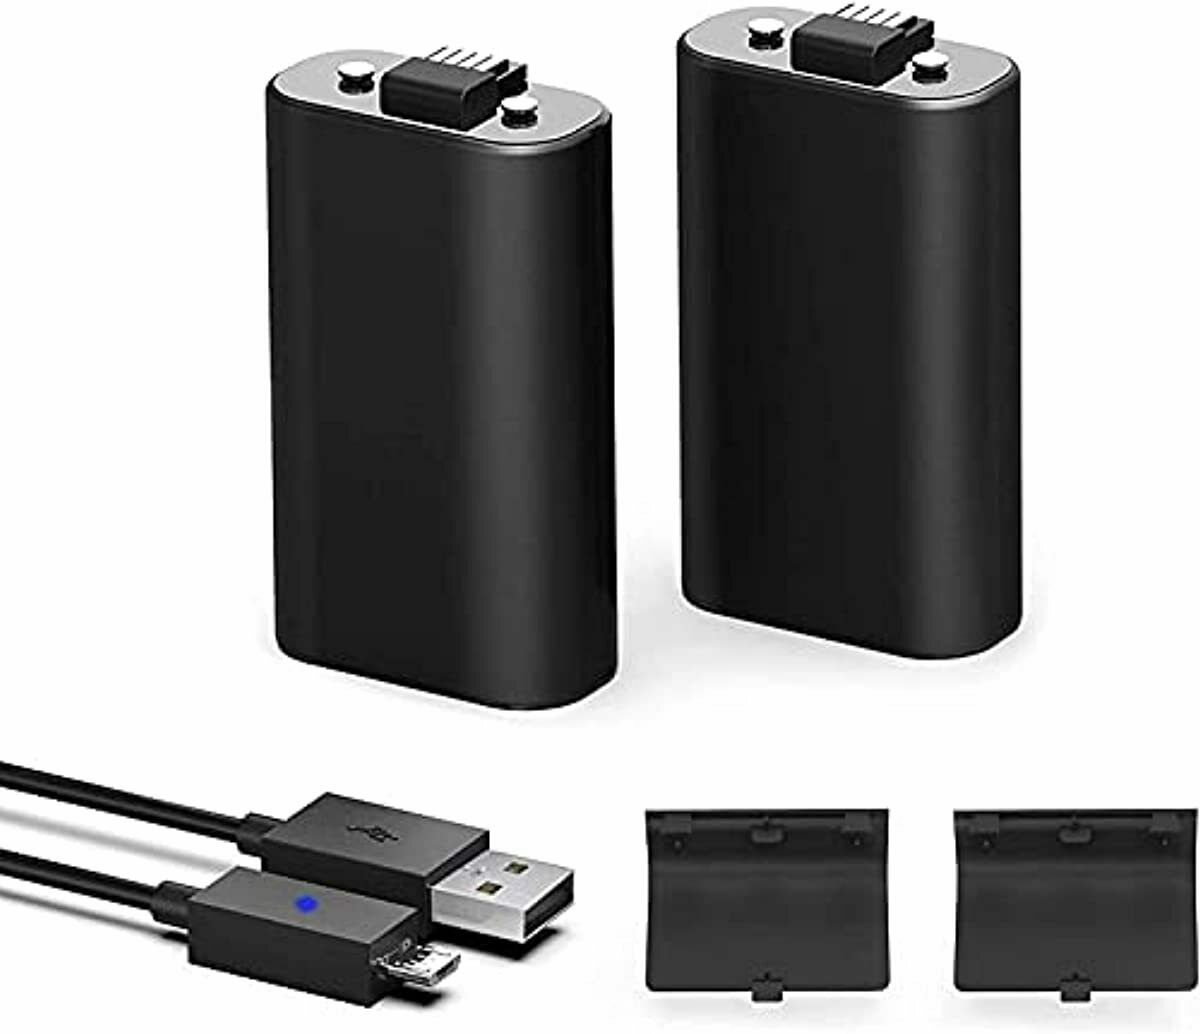 Battery Pack for Xbox One Controller, 2 Pack Rechargeable Batteries with 5FT USB